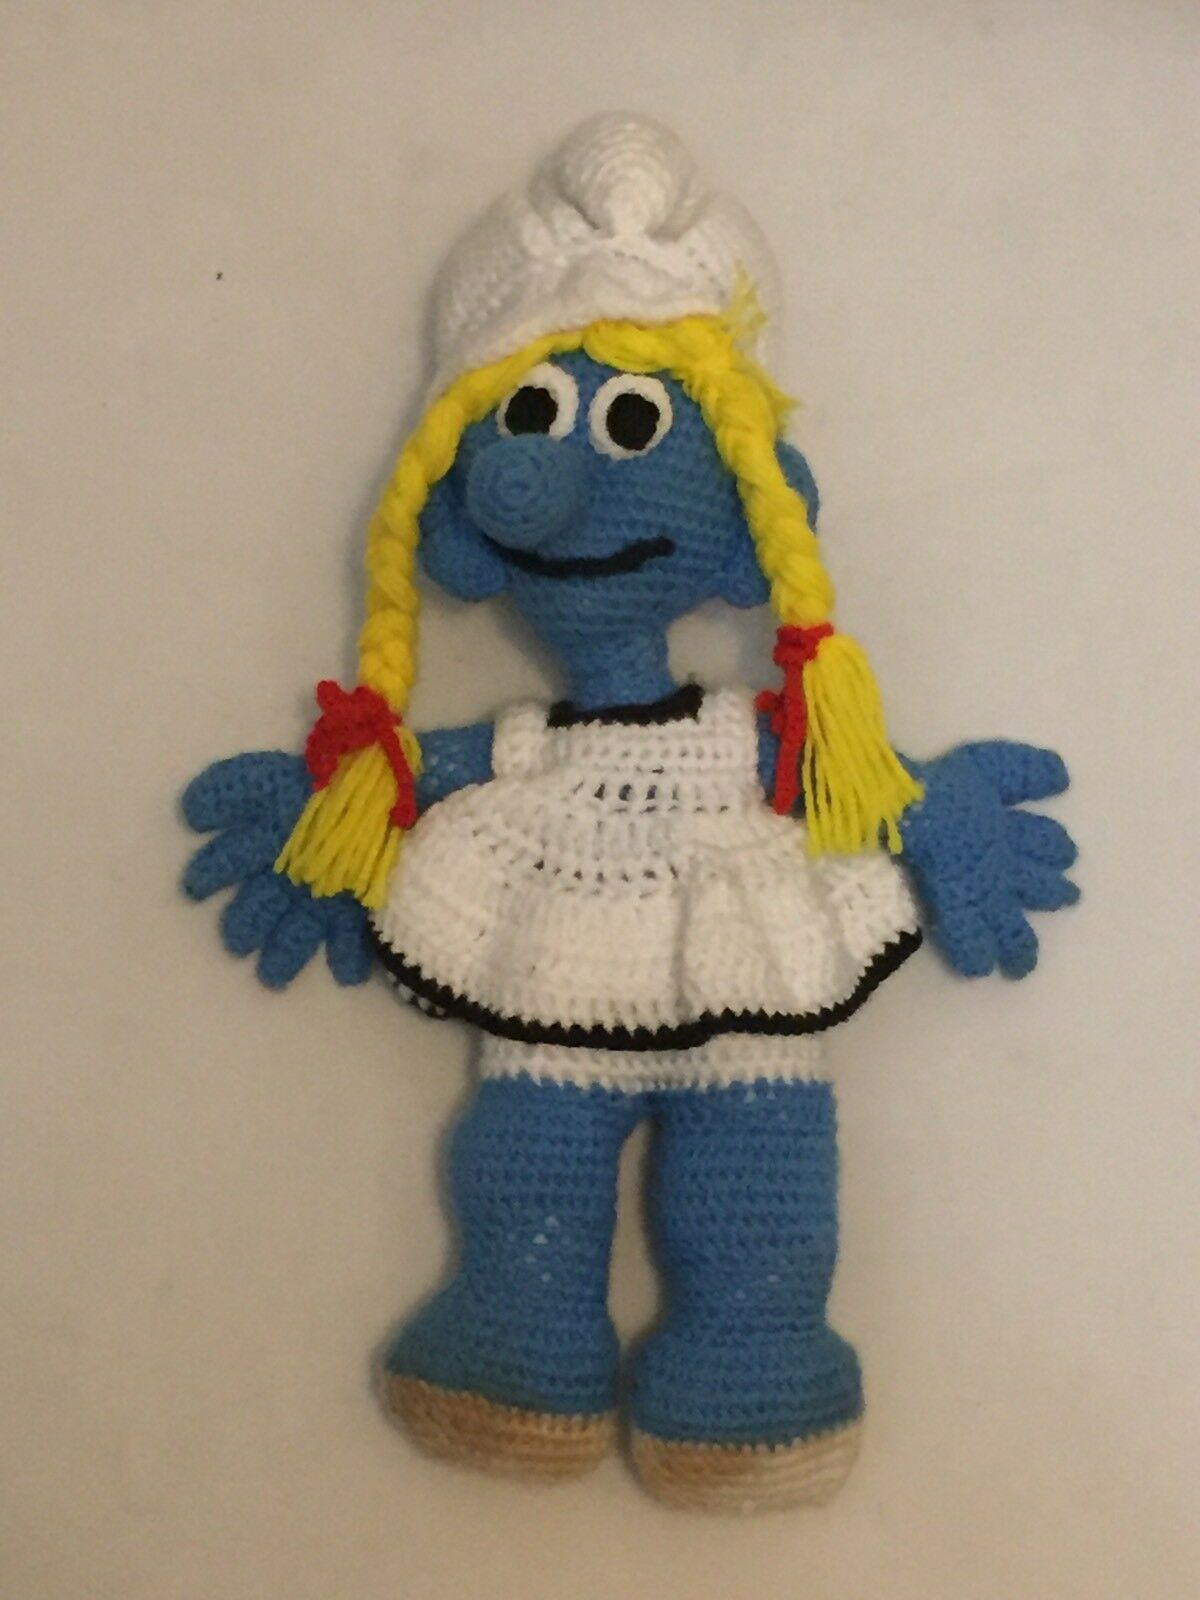 The SMURFS JUMBO Knitted Crochet Smurfette Smurf DOLL 21  Tall OOAK